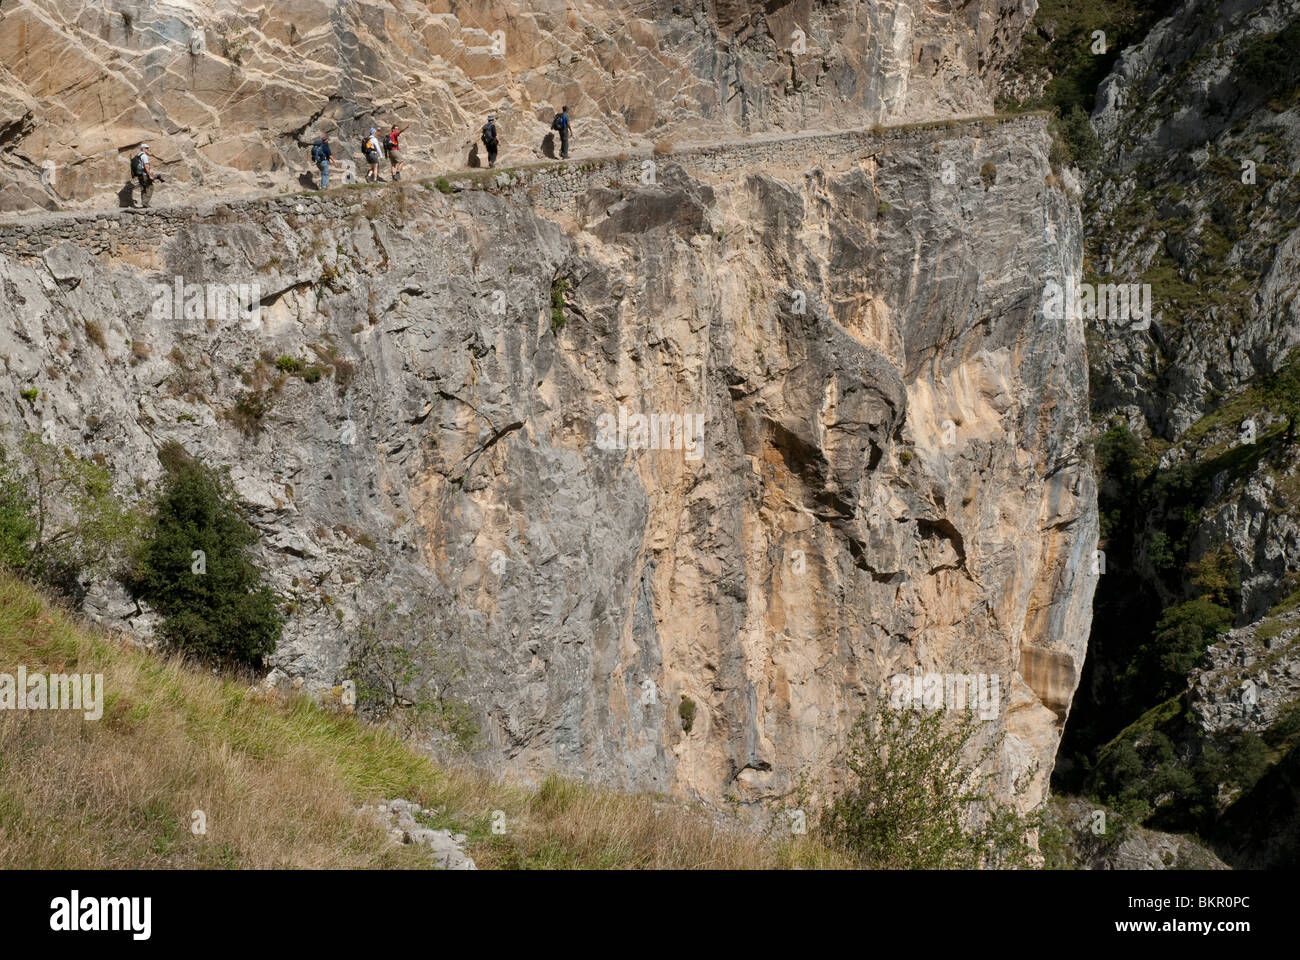 The Cares Gorge  separates the central and western massifs of the Picos. Picos de Europa, Northern Spain - Stock Image